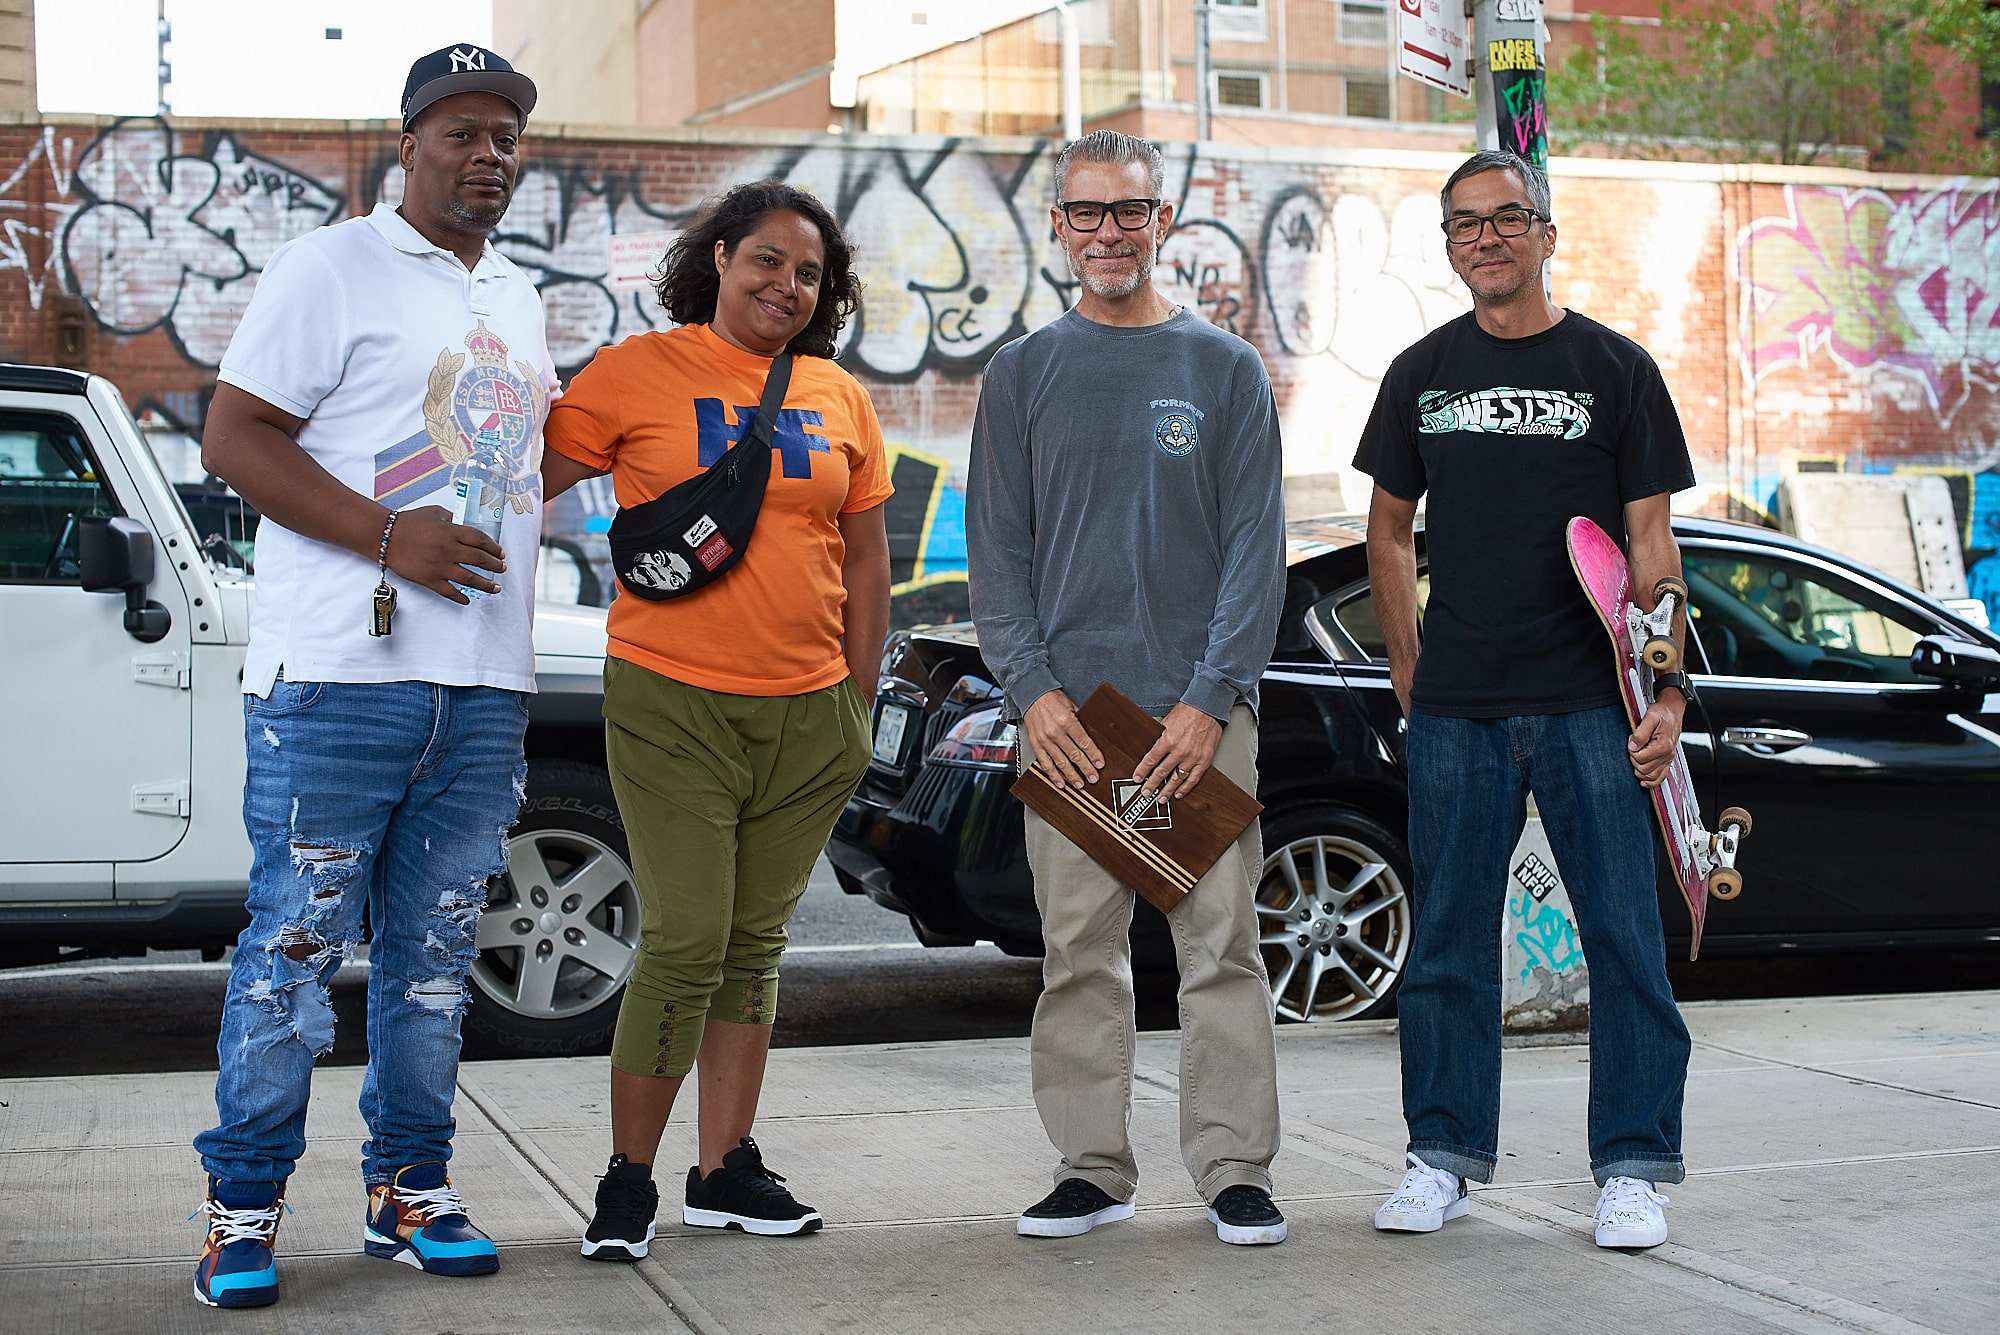 Harold Hunter Day - Jessica, Ryan Clements, and Rob Meronek